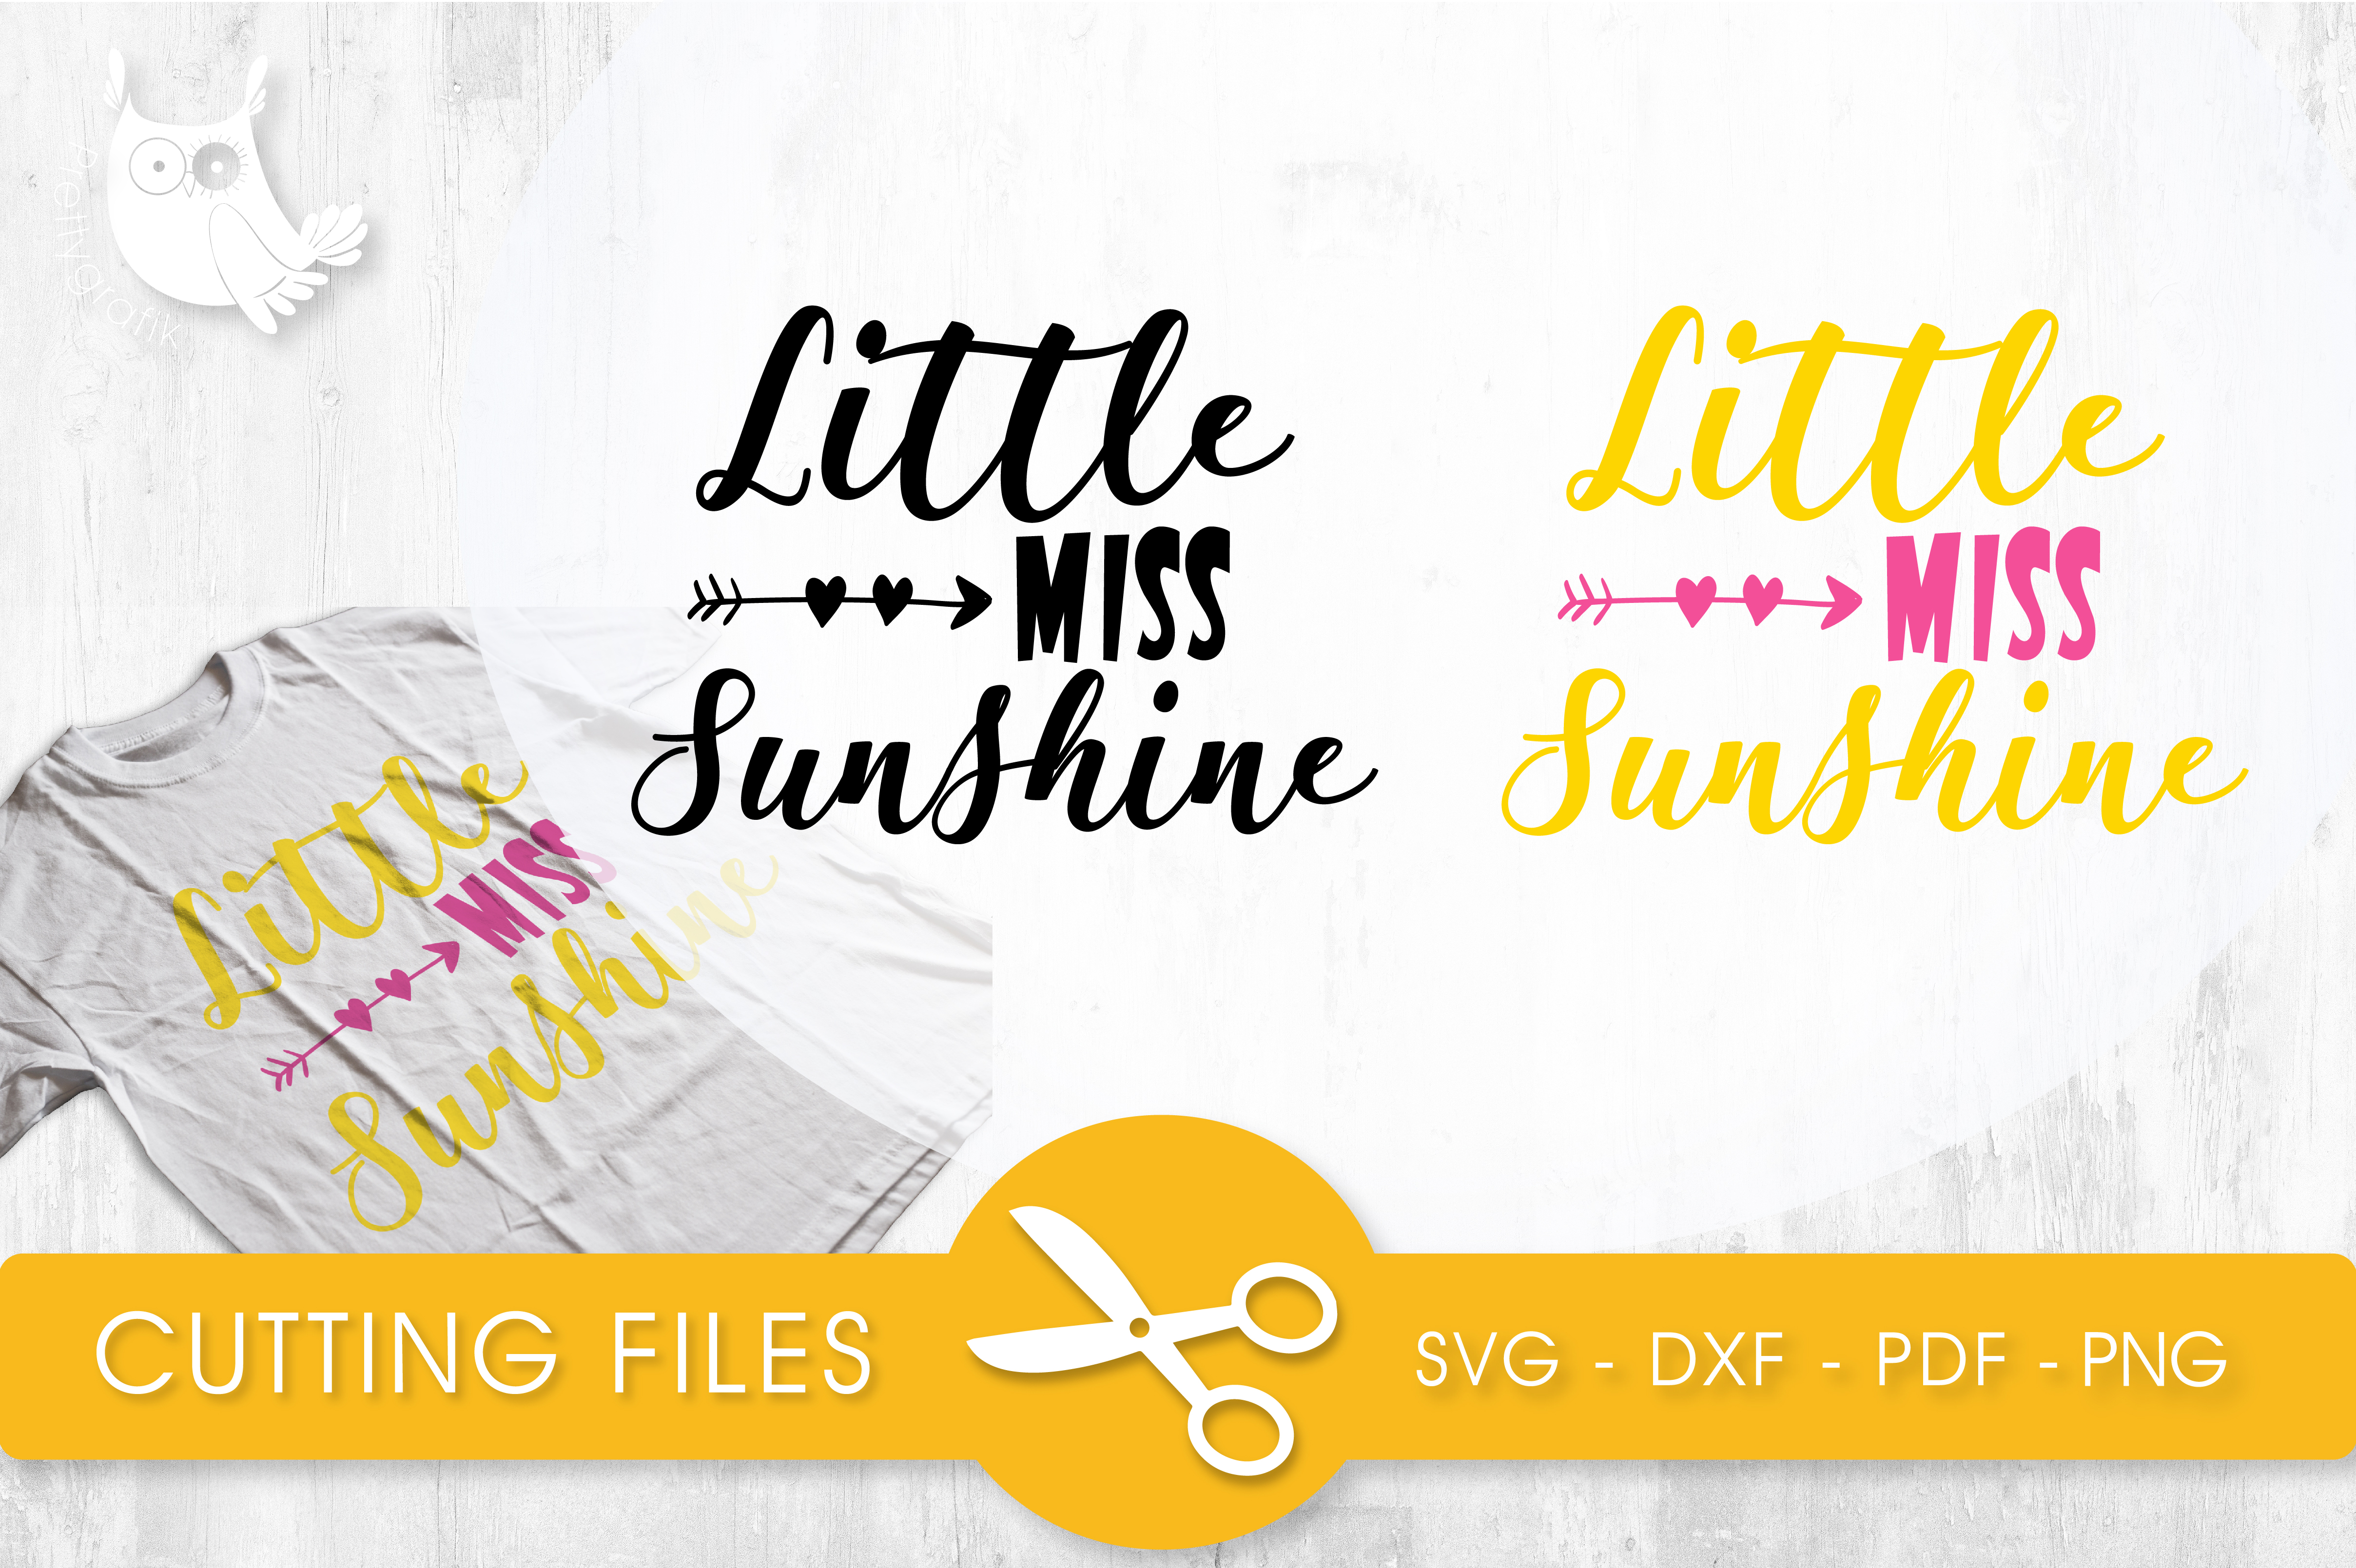 Download Free Little Miss Sunshine Graphic By Prettycuttables Creative Fabrica for Cricut Explore, Silhouette and other cutting machines.